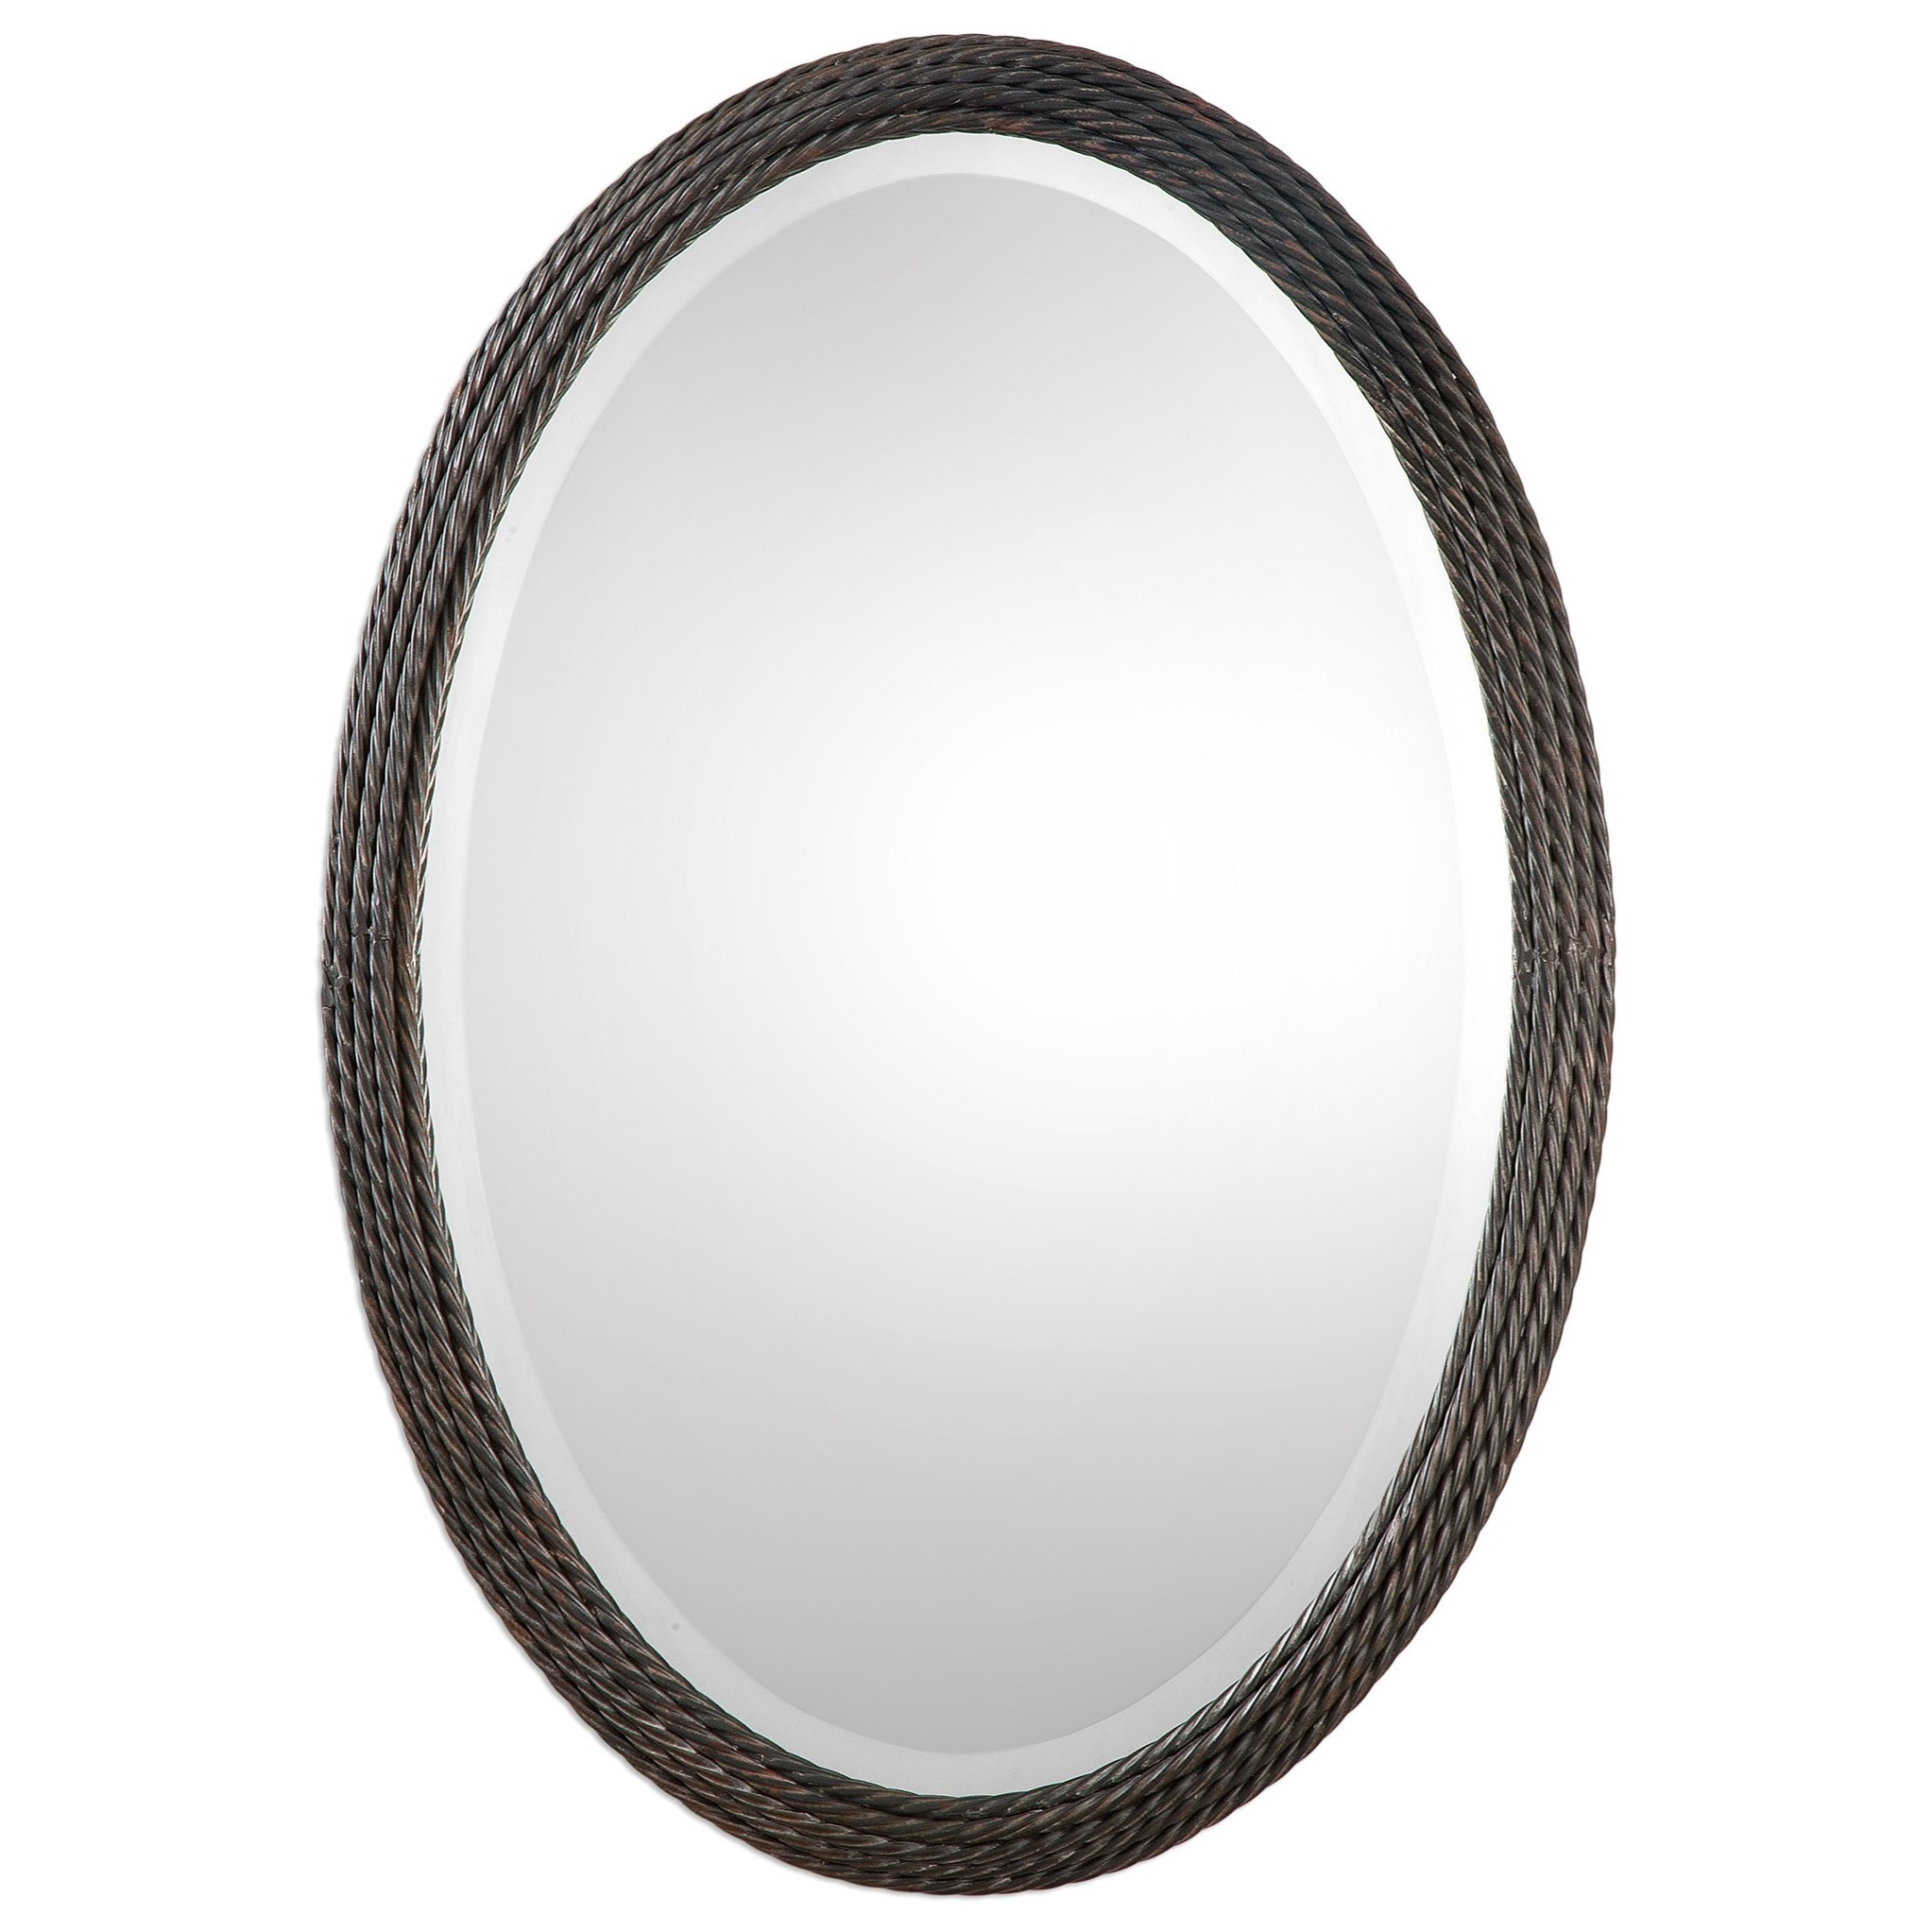 Uttermost Mirrors Sabana Oval Mirror - Item Number: 09102